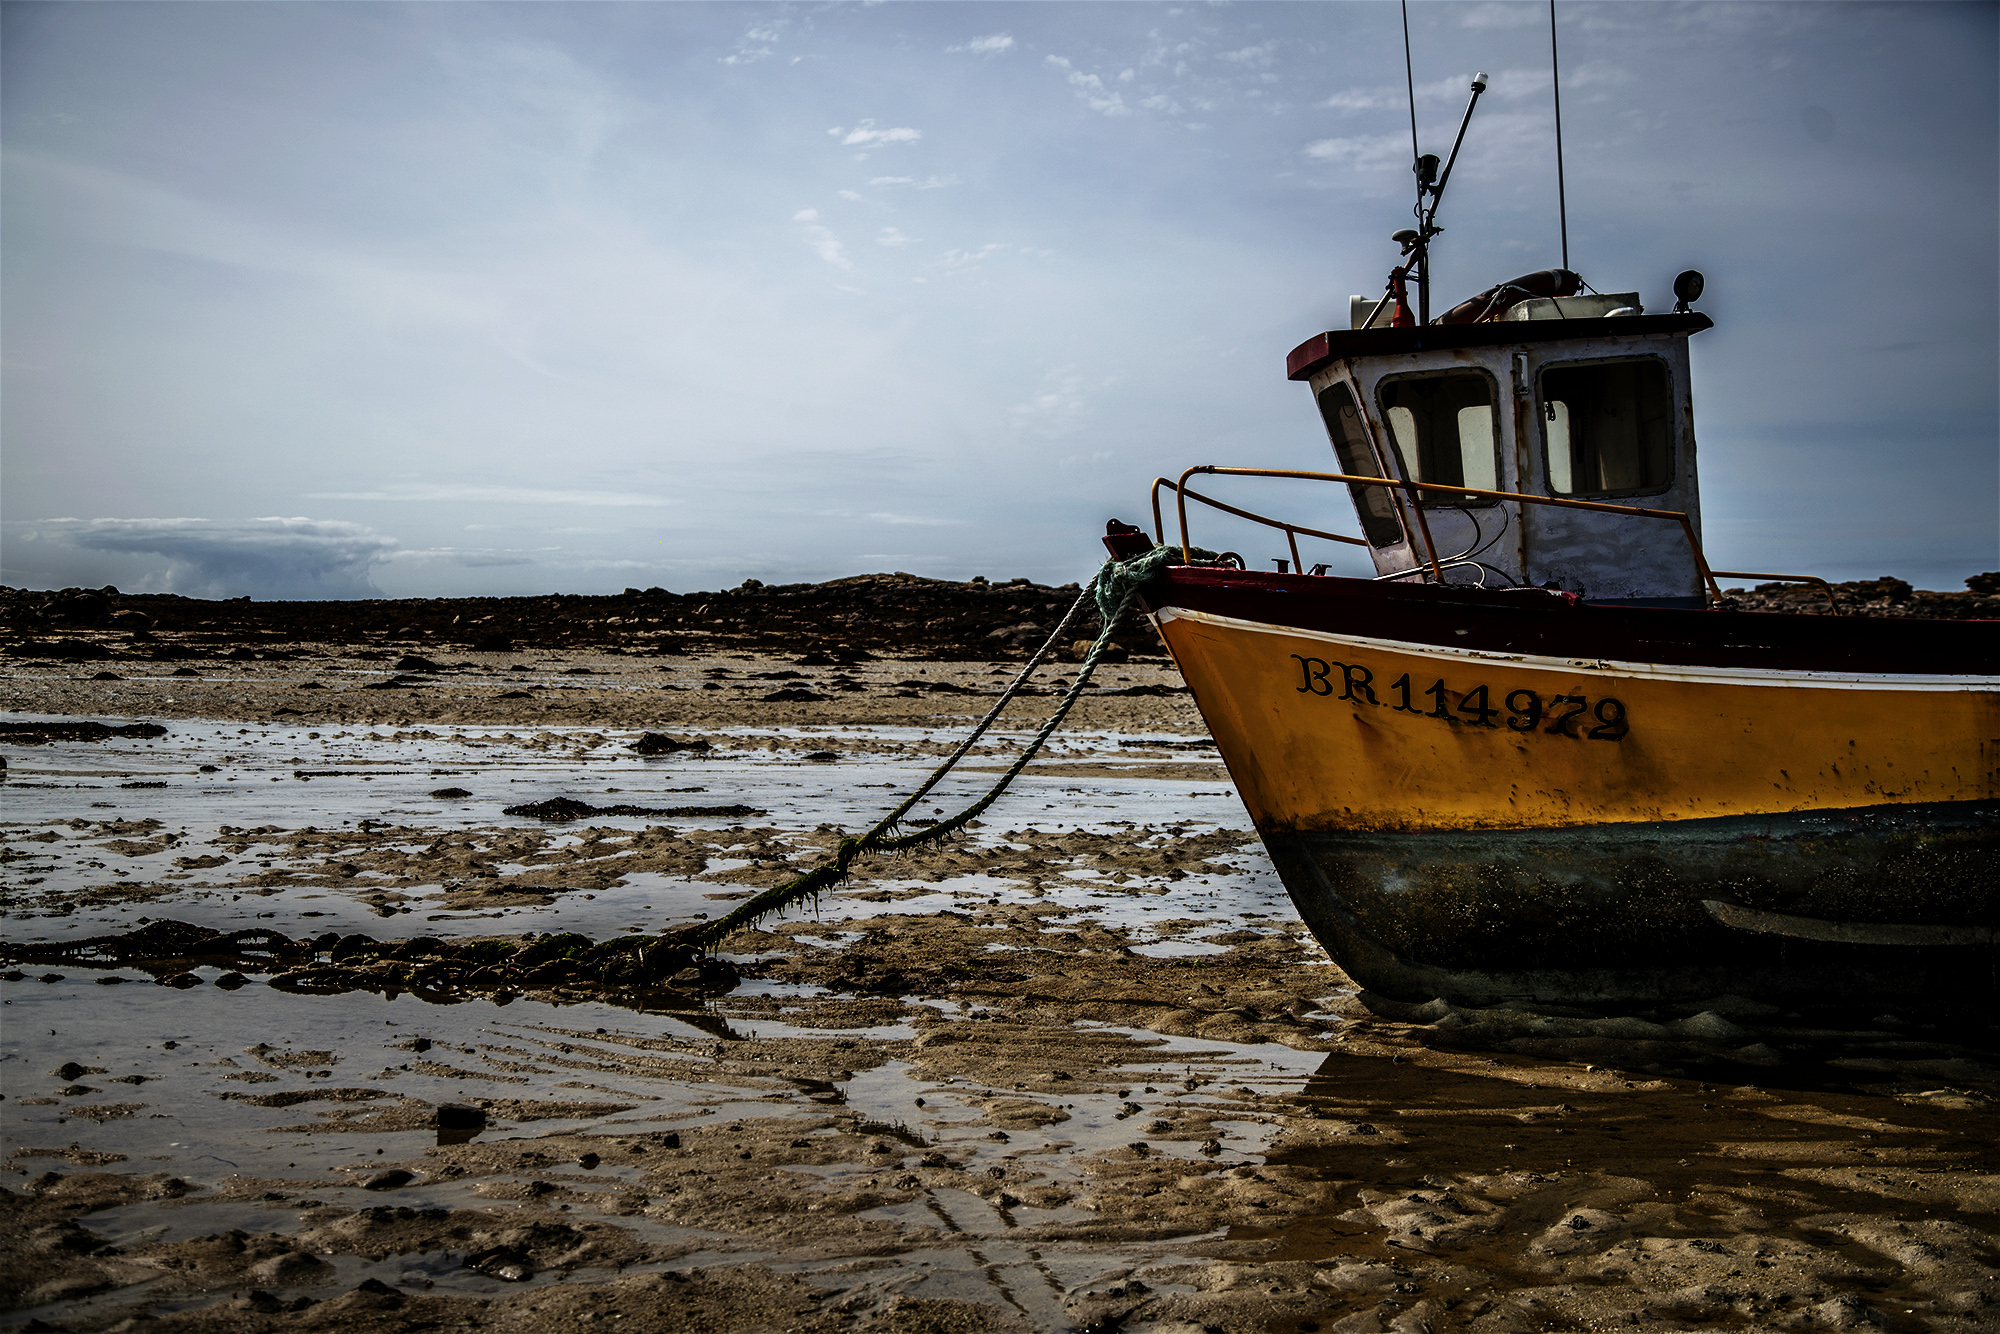 Brittany_Grounded_Fishing_Boats-029color.jpg